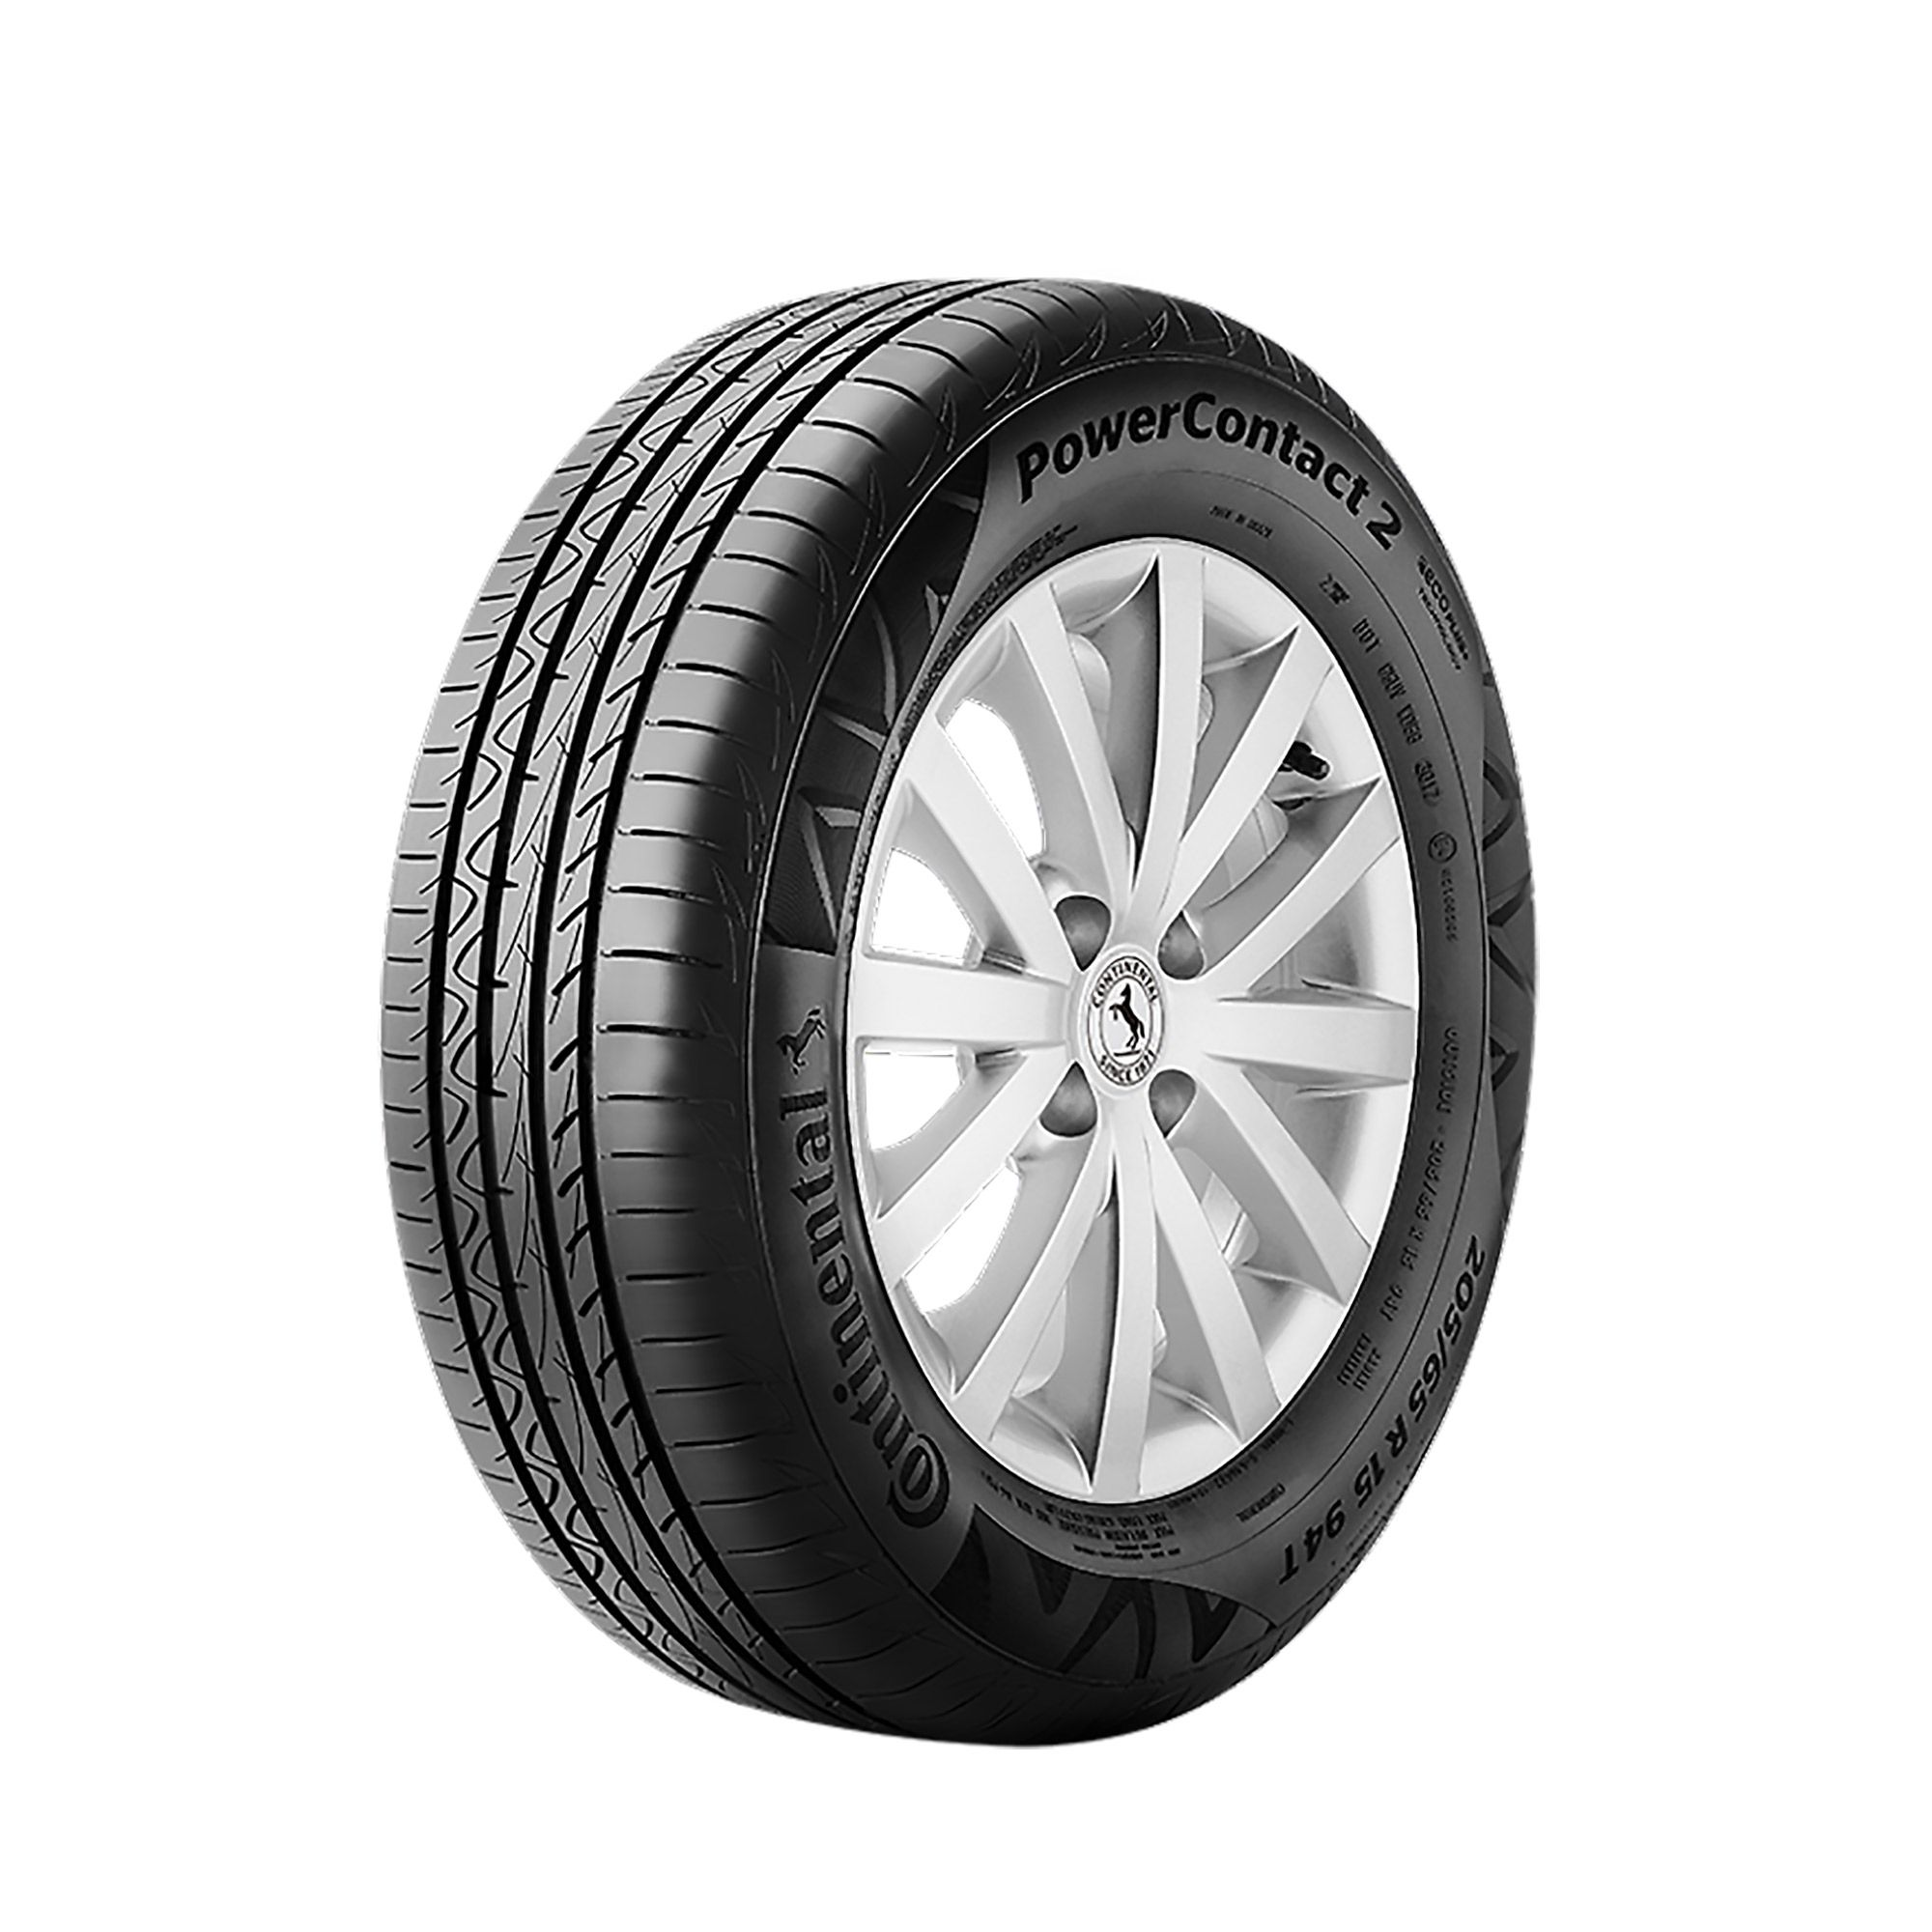 175/65r14 82t Powercontact 2